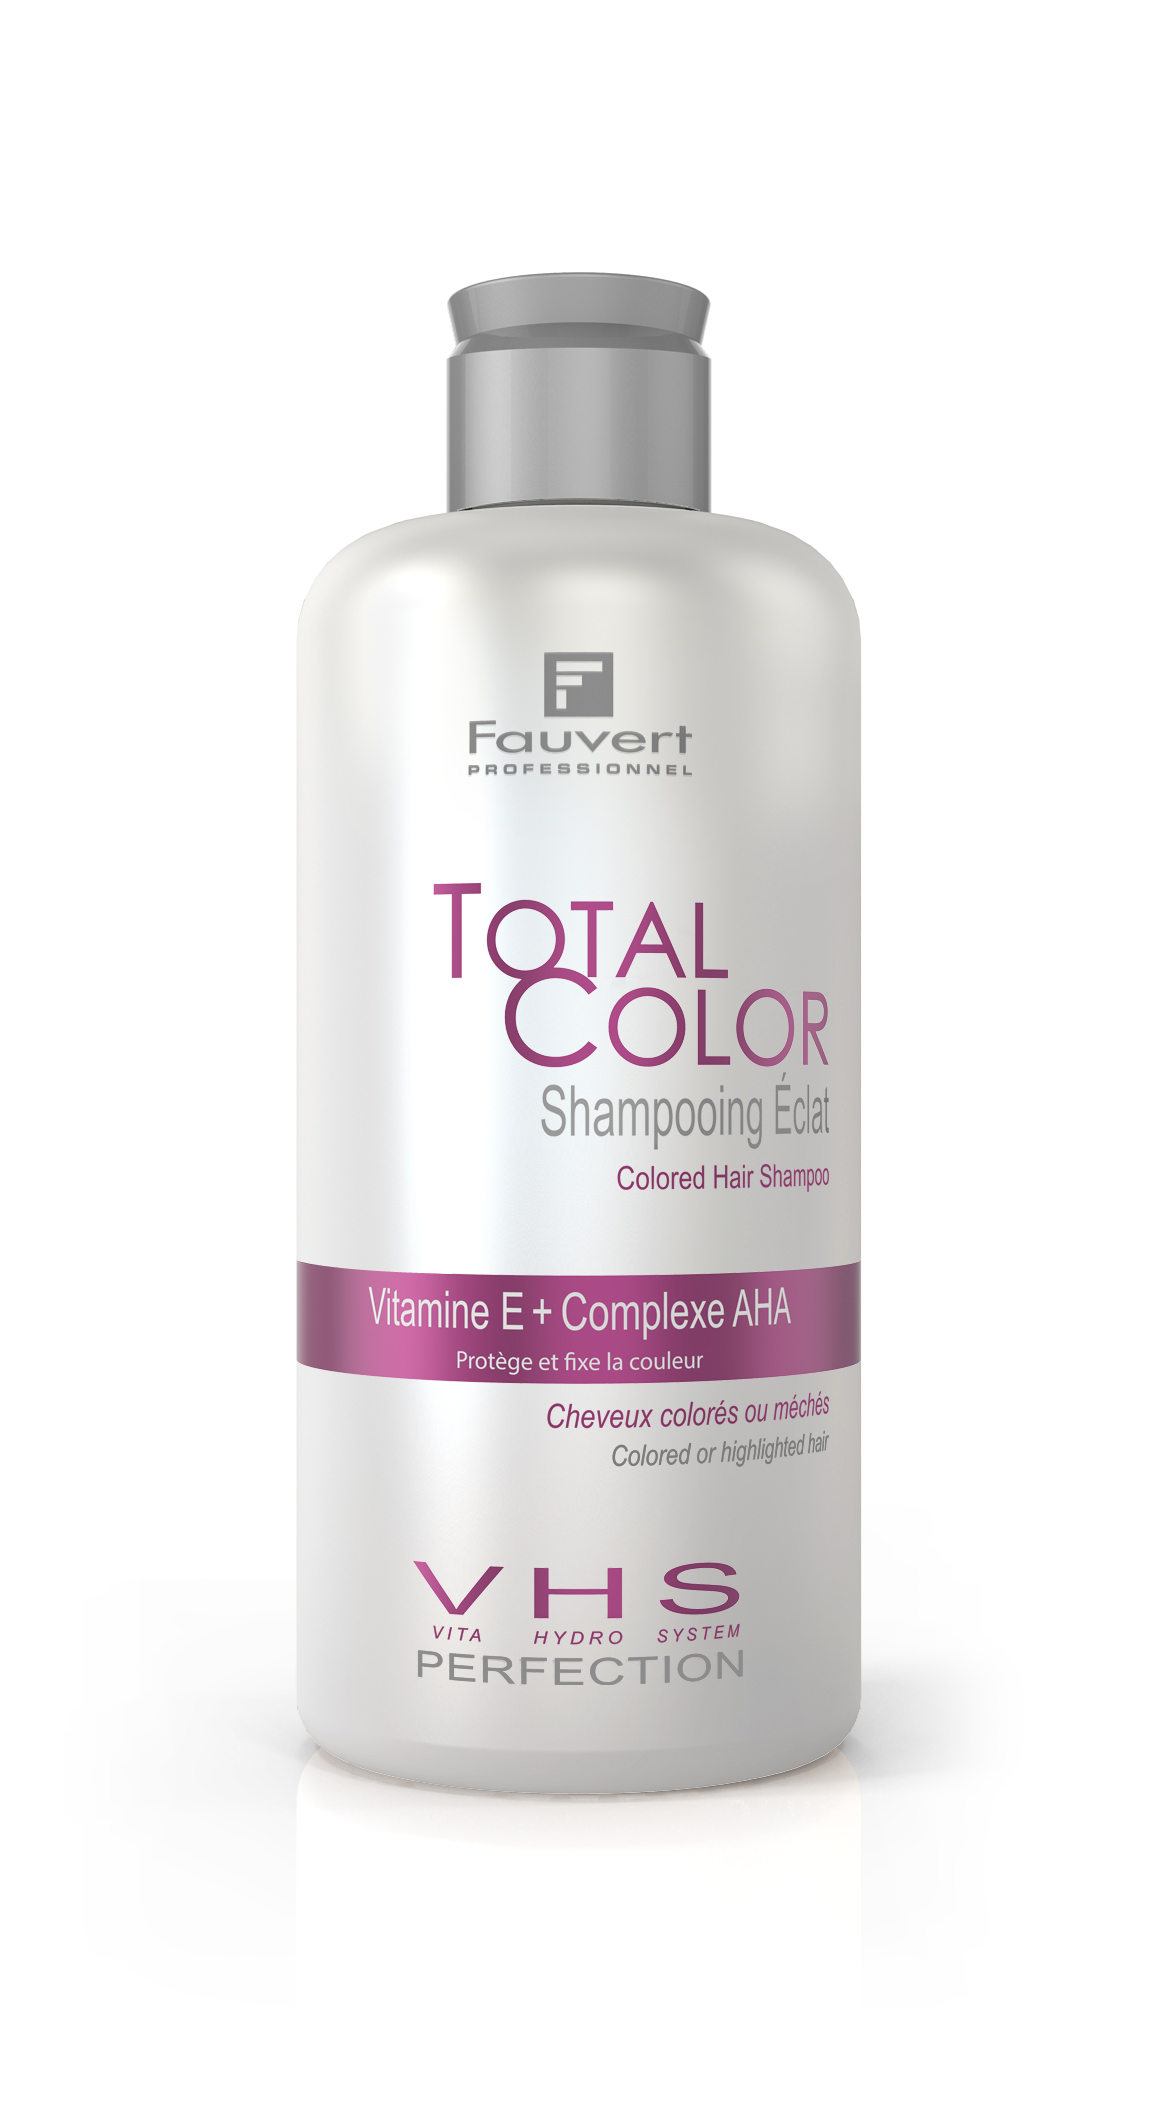 Shampooing Eclat Doux - Colored Hair Shampoo - Vita Hydro-System - Total Color - 250ml / 1000ml